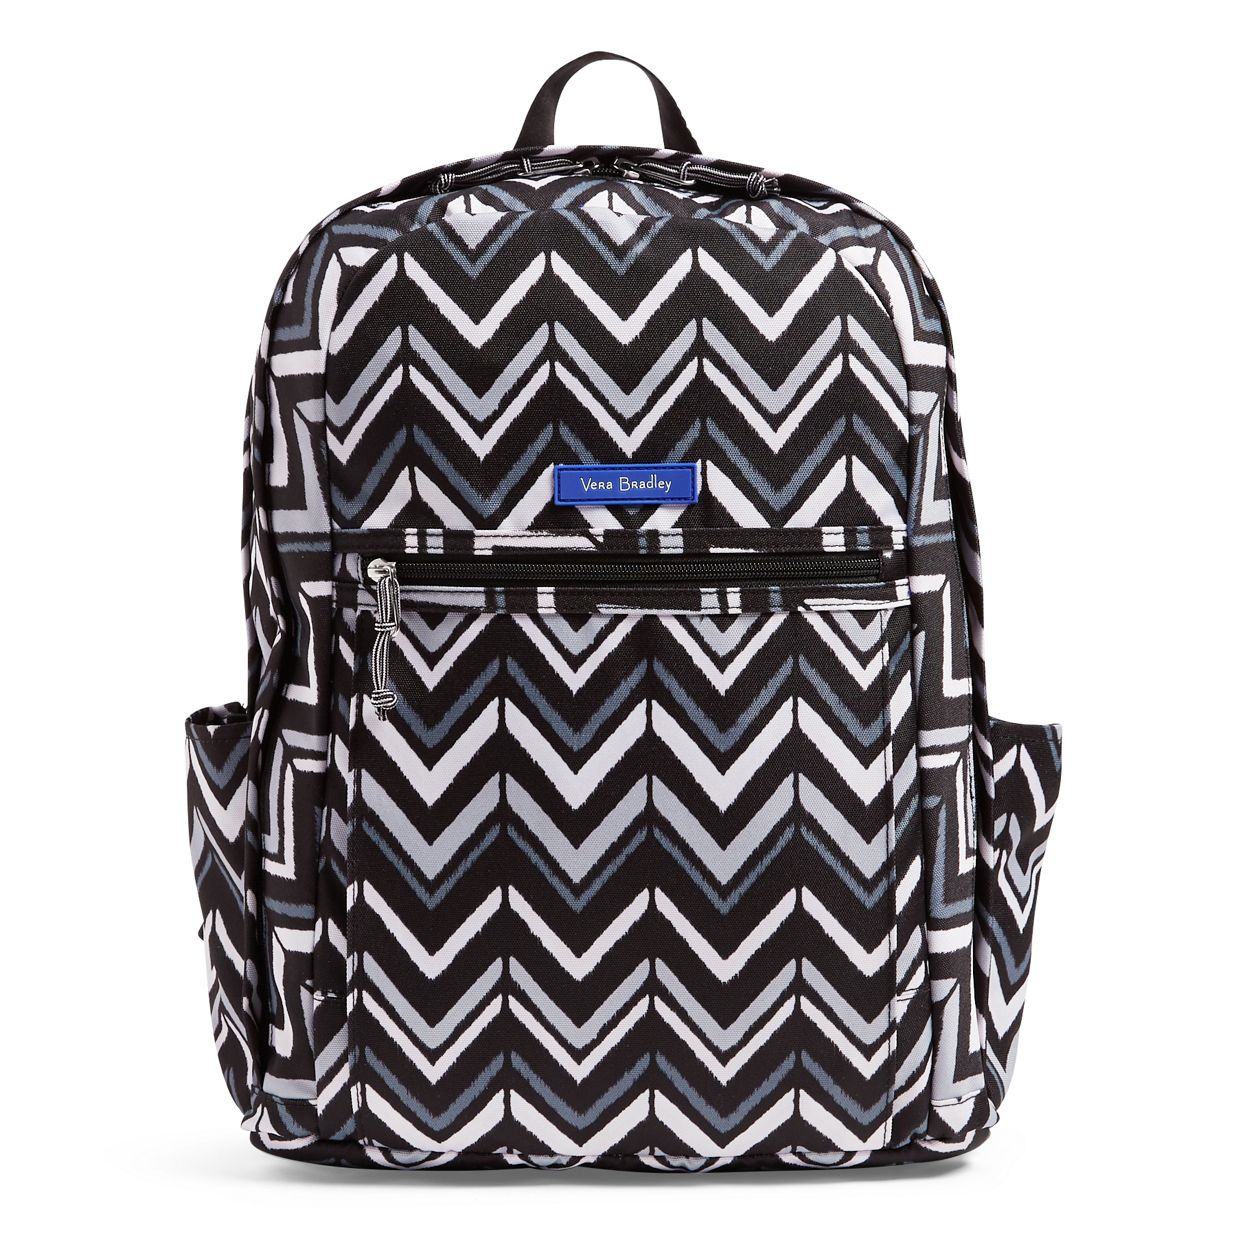 8d2c2b6fe89d Image of Lighten Up Grand Backpack in Lotus Chevron